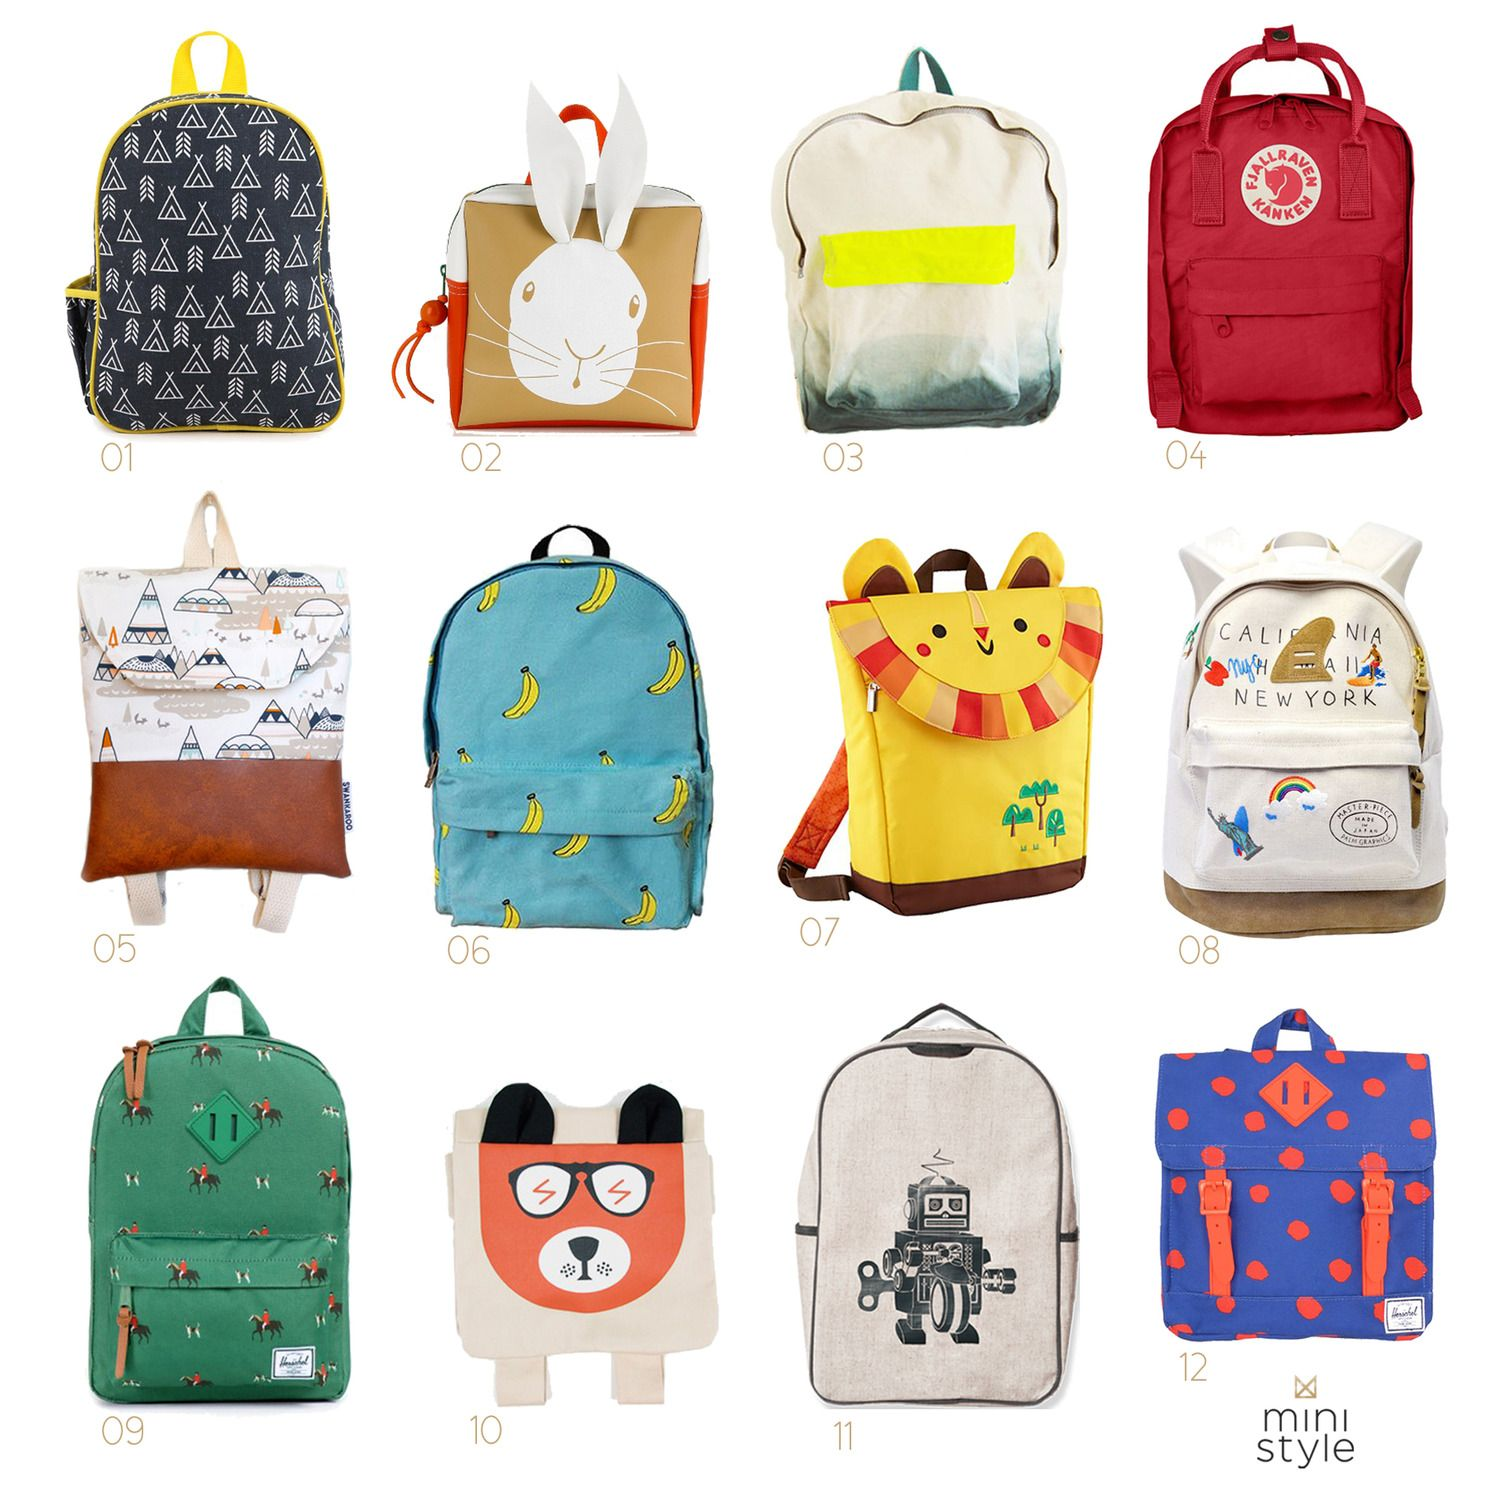 ... Kids Backpack Boys and more! Back-to-School Backpacks — mini style 49462163ddf46